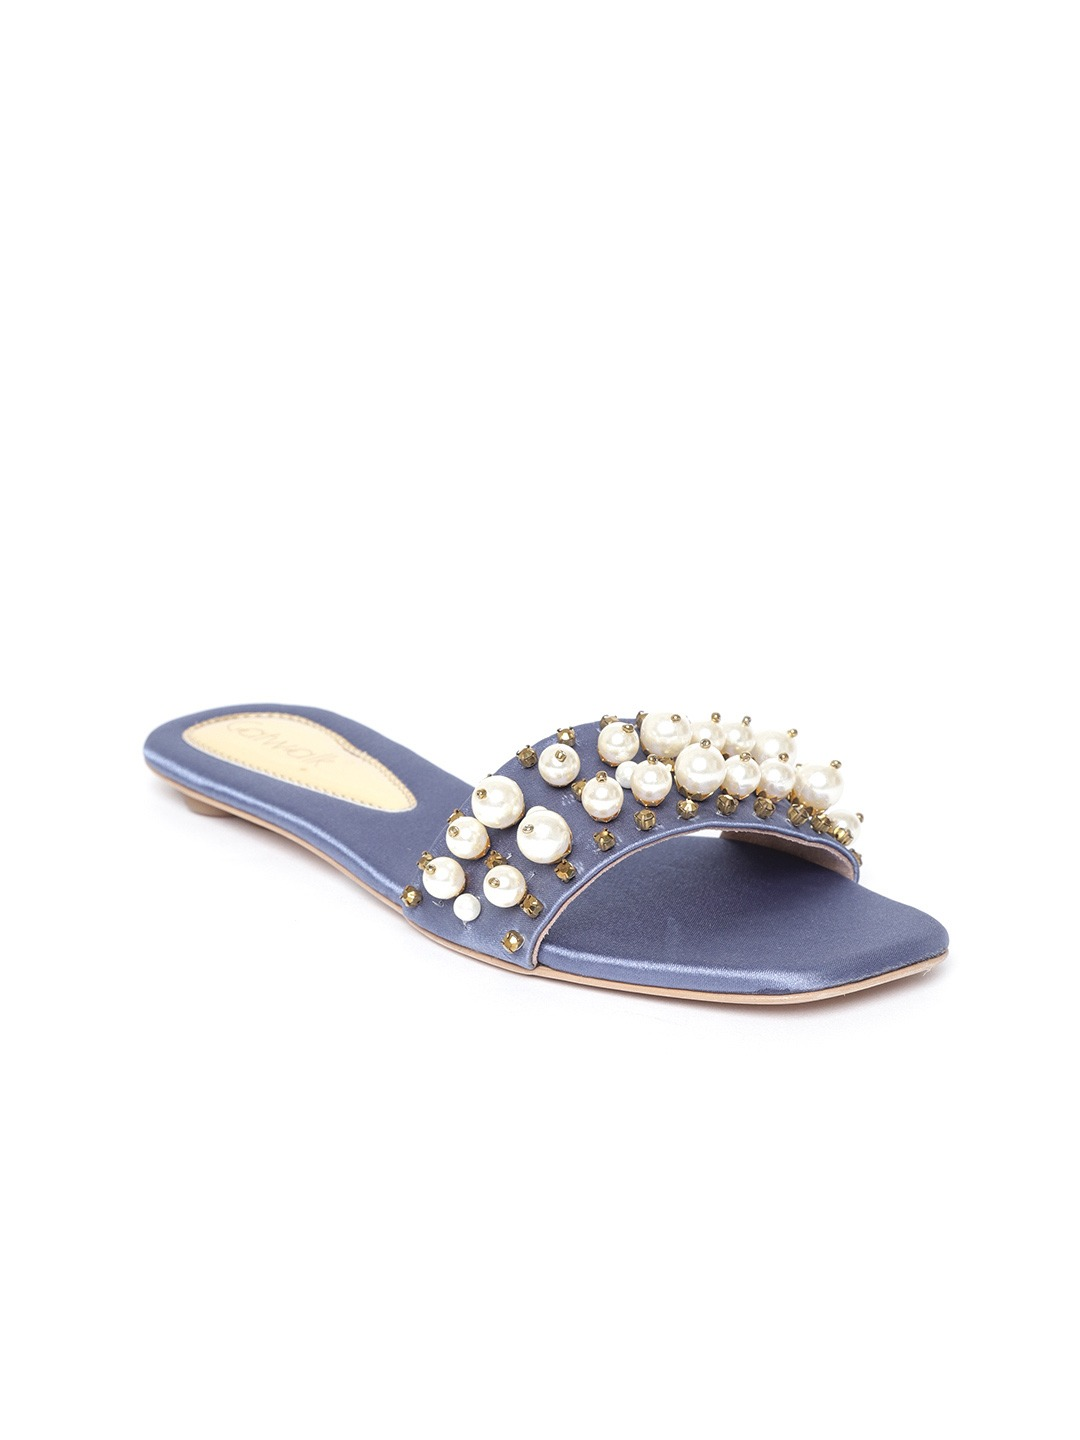 Blue Embellished Open Toe Flats